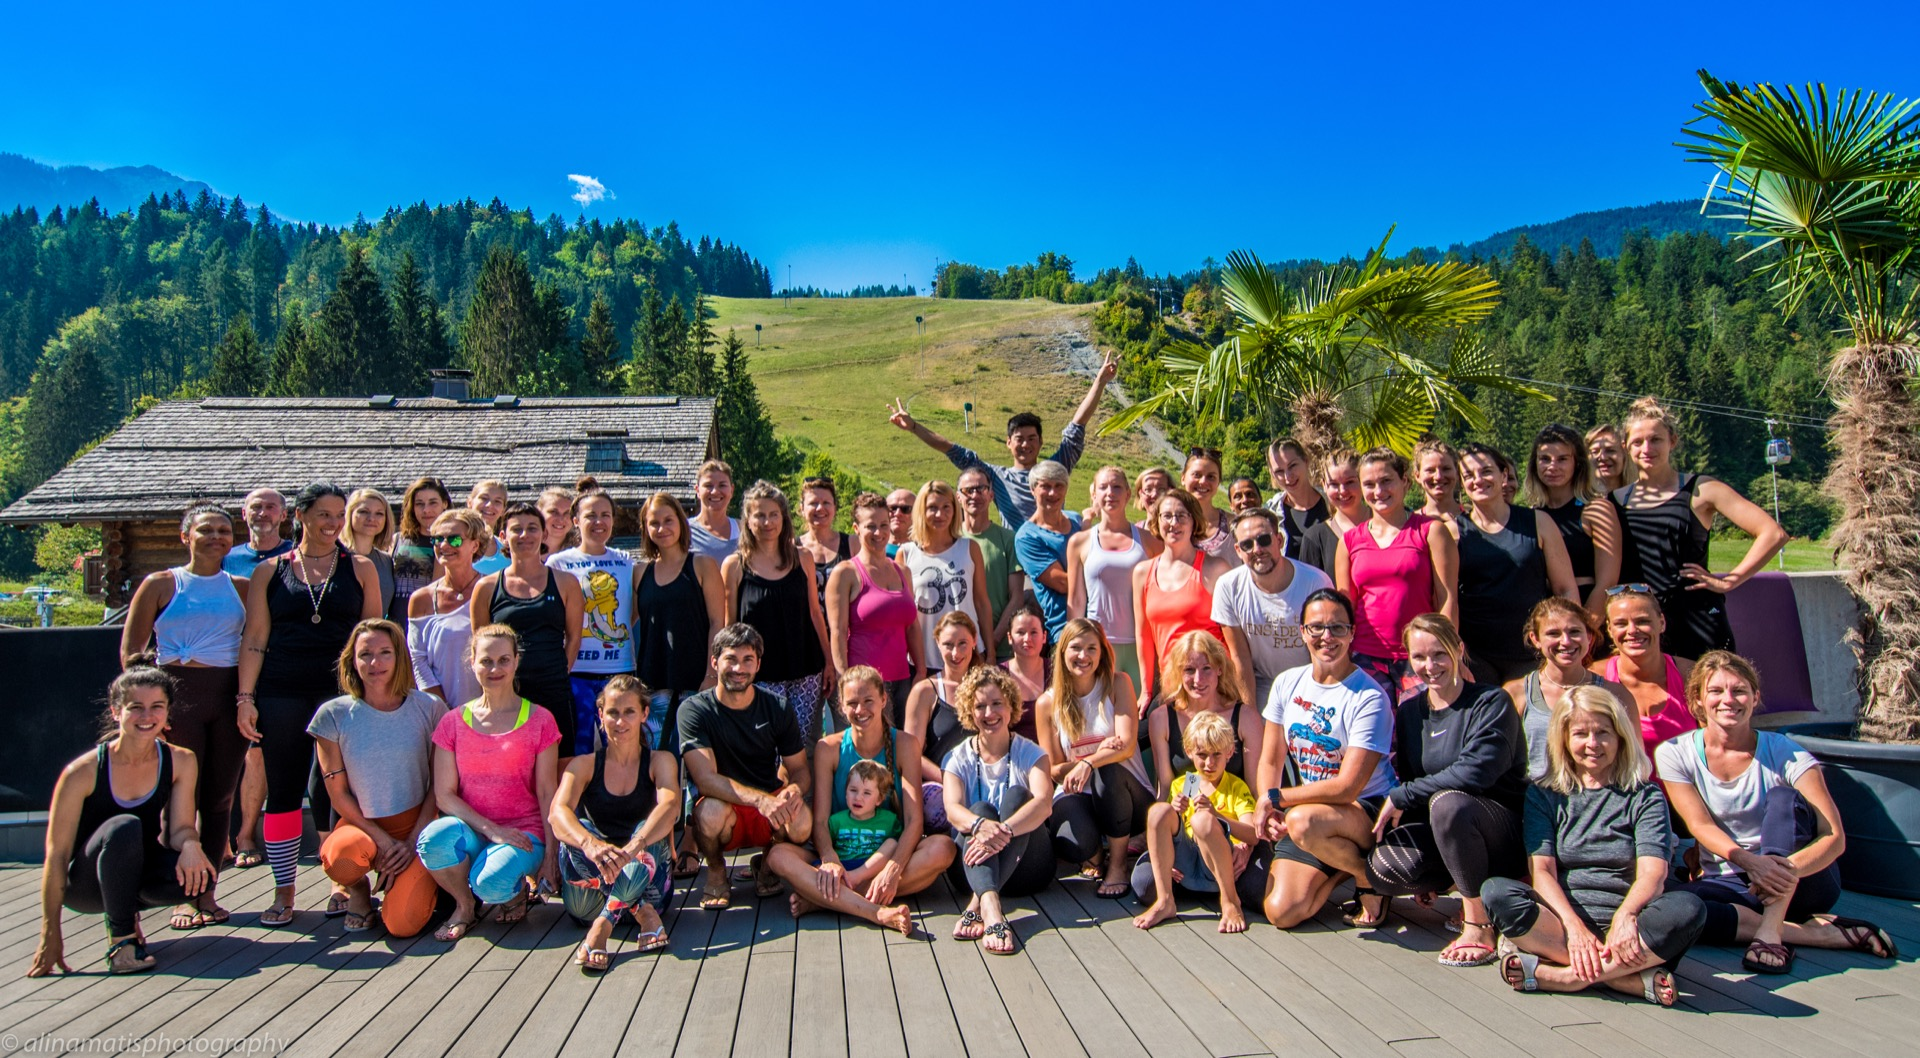 Hie-Kim-Friends-2018-Yoga-Retreat-Alina-Matis-Photography-184 - Hie Kim Yoga - Yoga Retreat - Yoga Workshops und Reisen